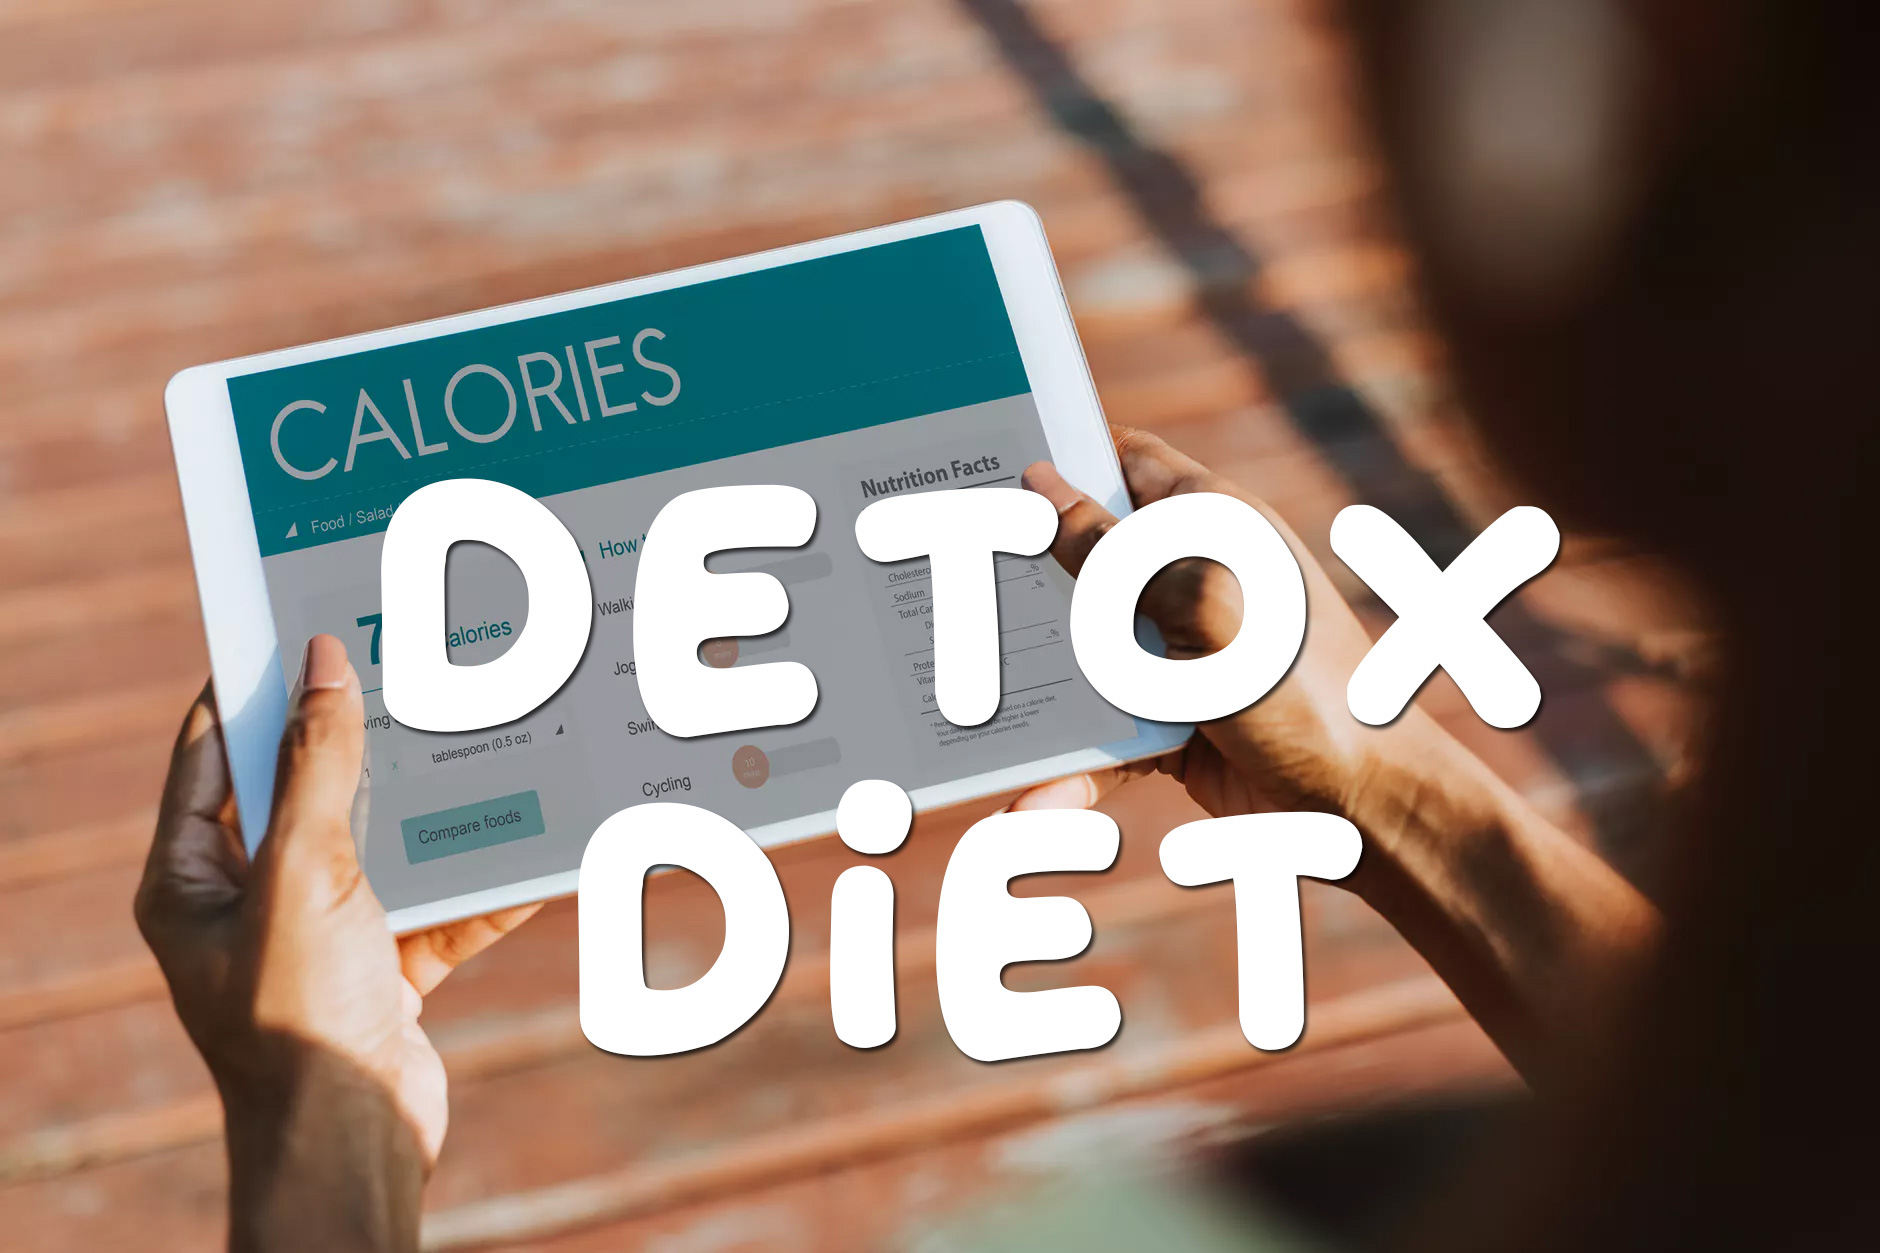 Detox Diet – Useful or Just a Waste of Money